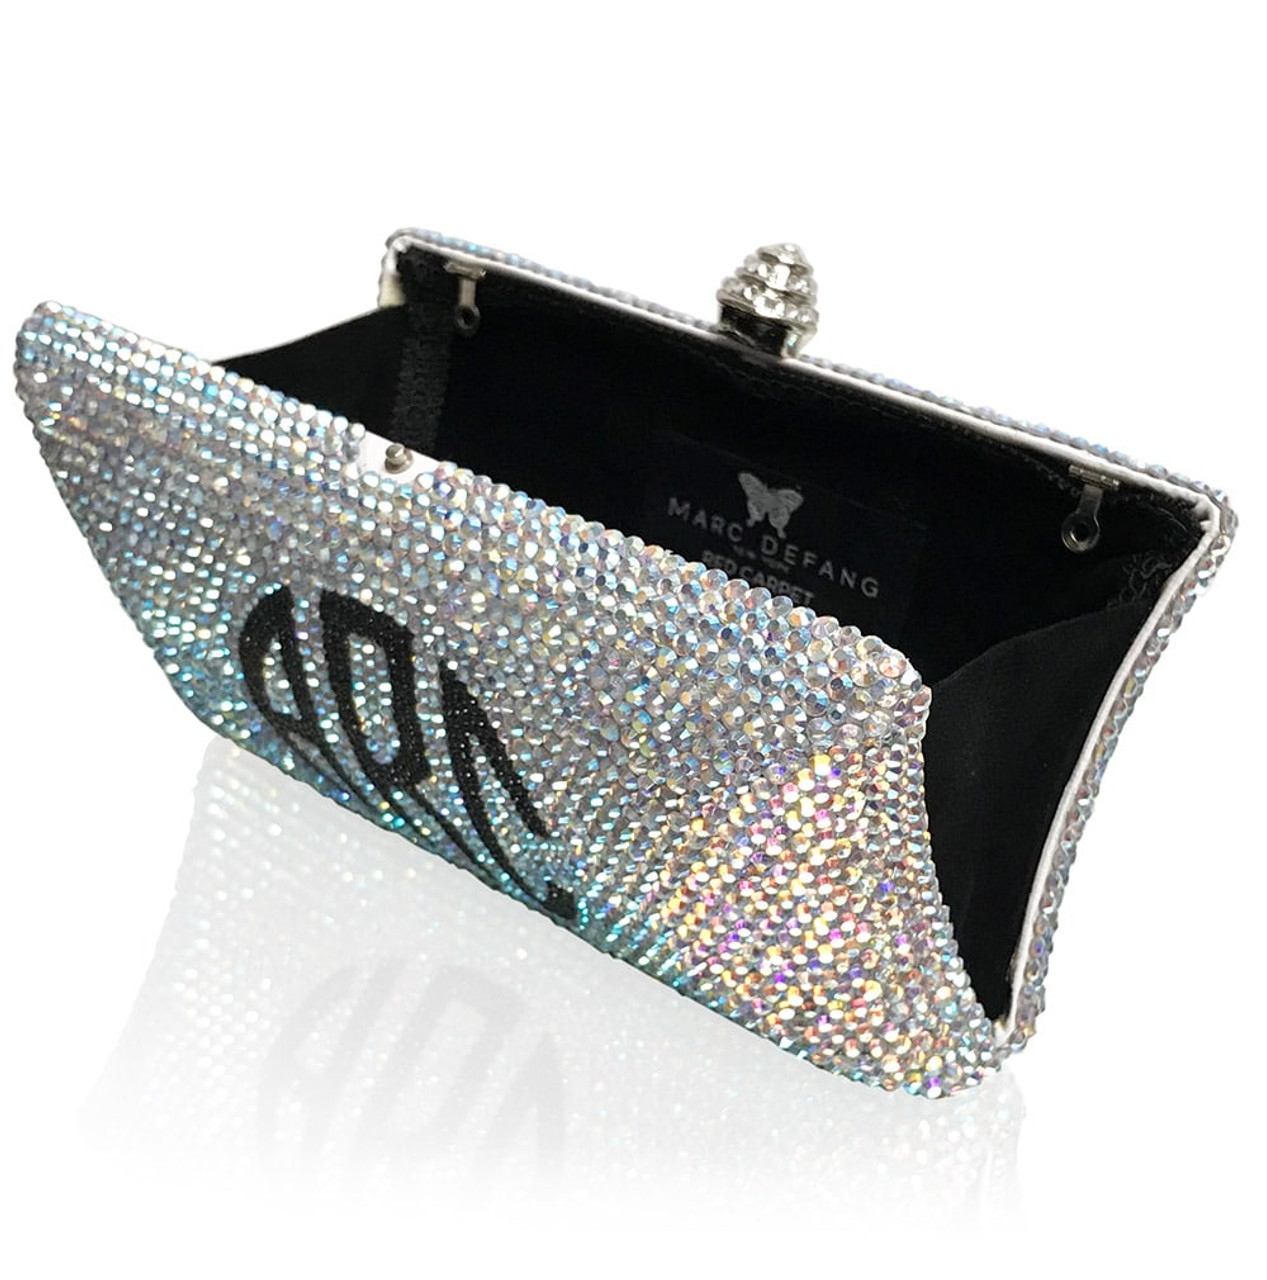 Monogram Large Crystal Clutch (iPhone Xs Max Friendly)